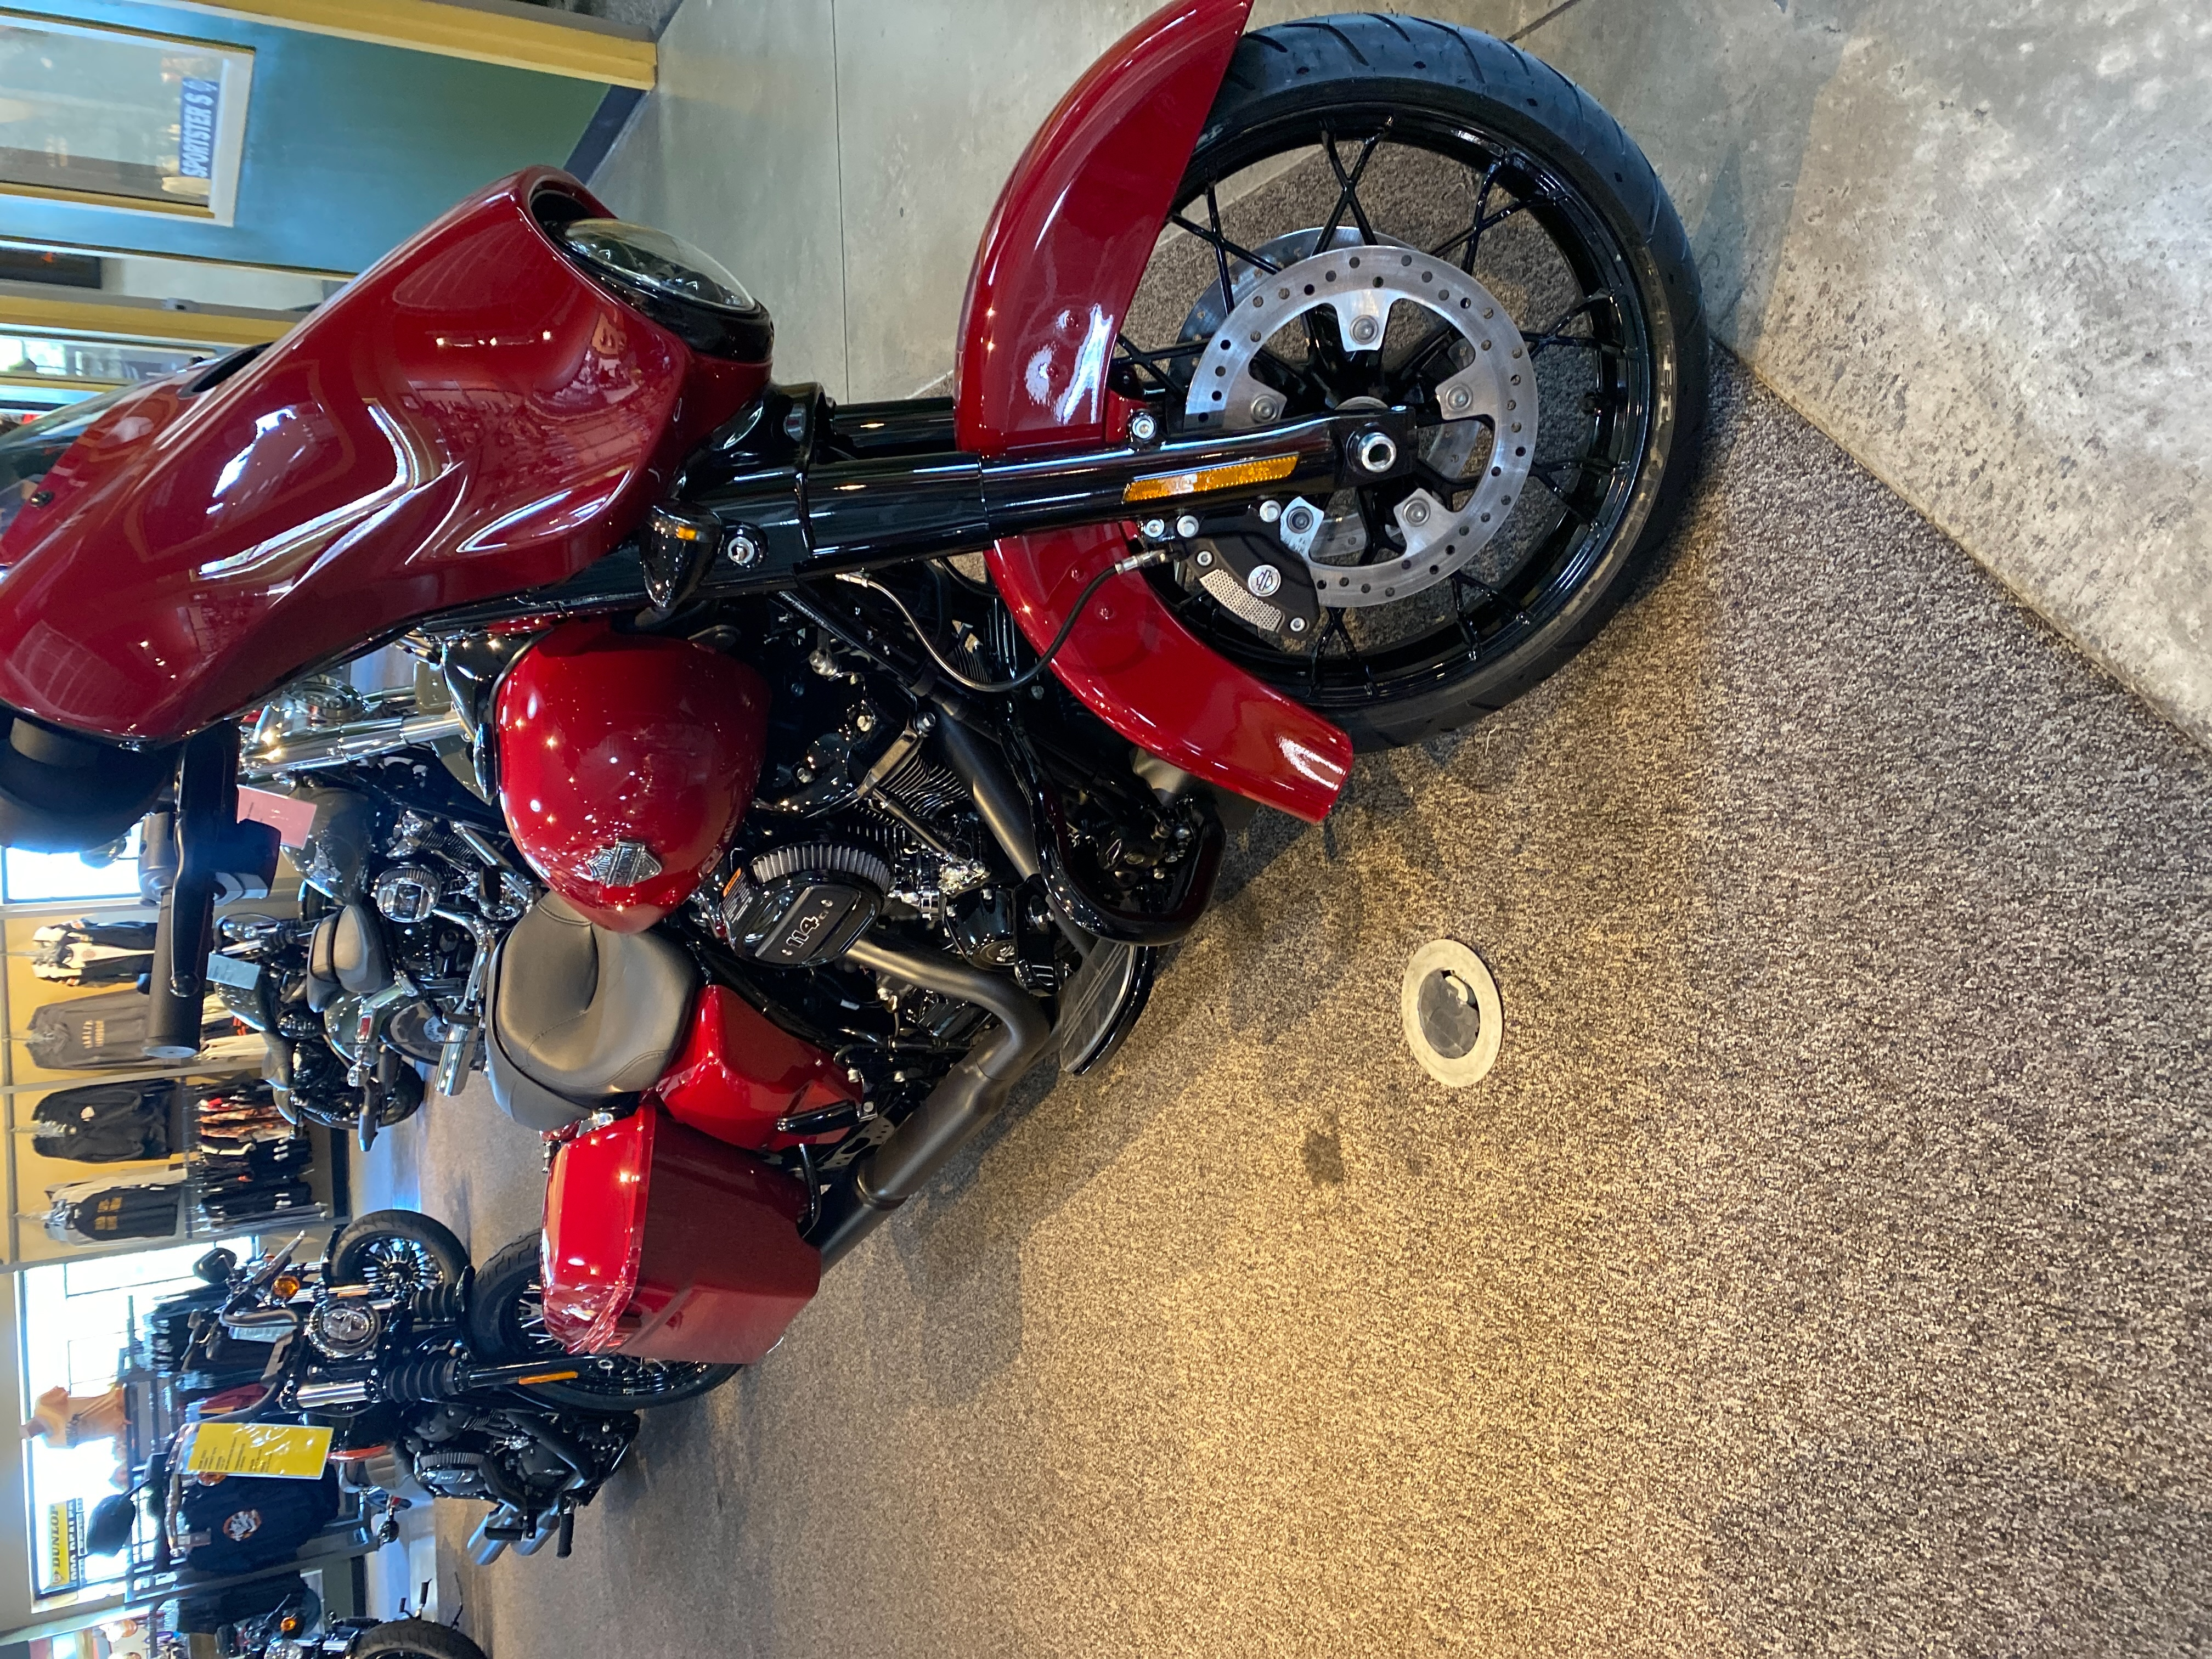 2021 Harley-Davidson Grand American Touring Street Glide Special at Outpost Harley-Davidson